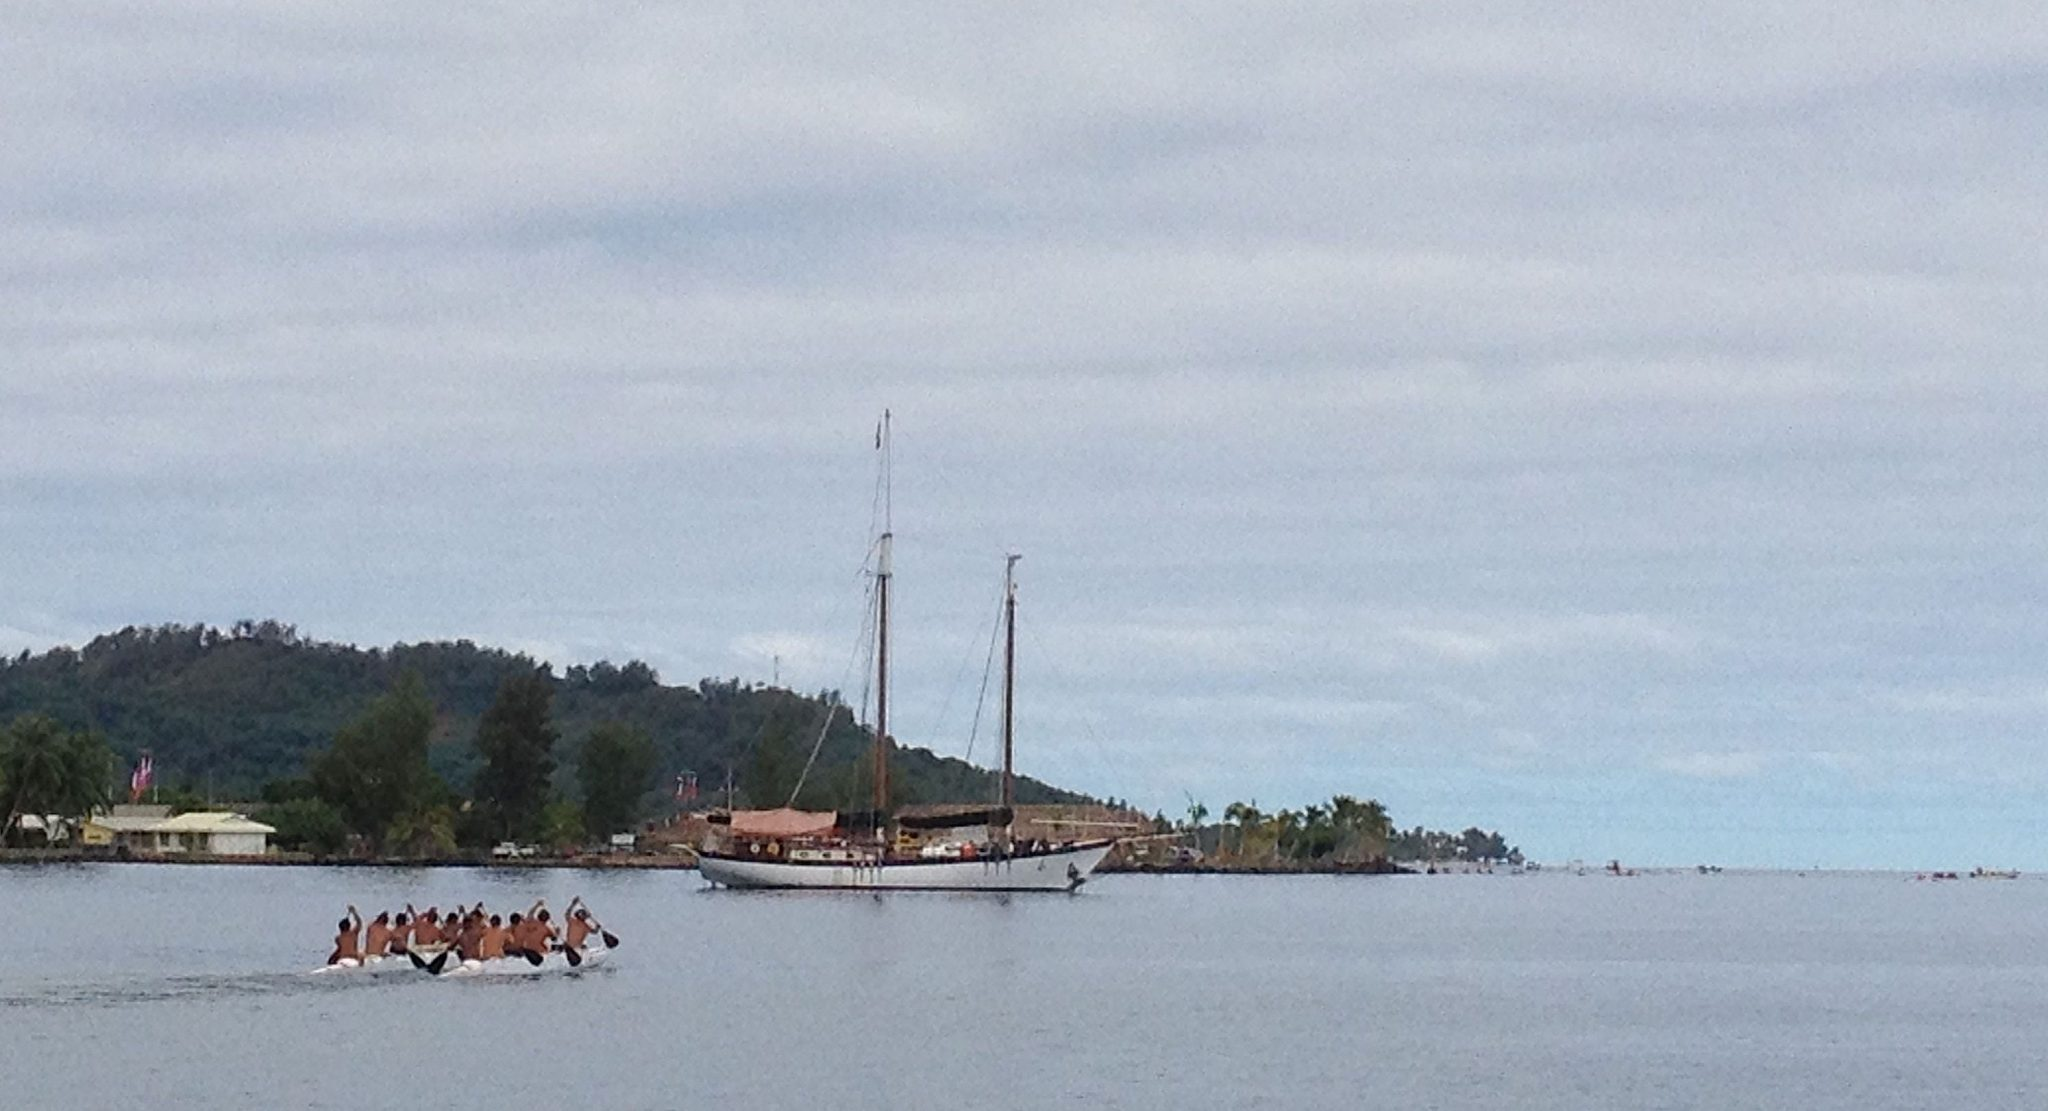 19. In a view from Joyful, a traditional outrigger canoe for 12 made its way to compete in the Heiva race in Bora Bora.  More competing outriggers were staged in the lagoon as seen on the right side of this photo